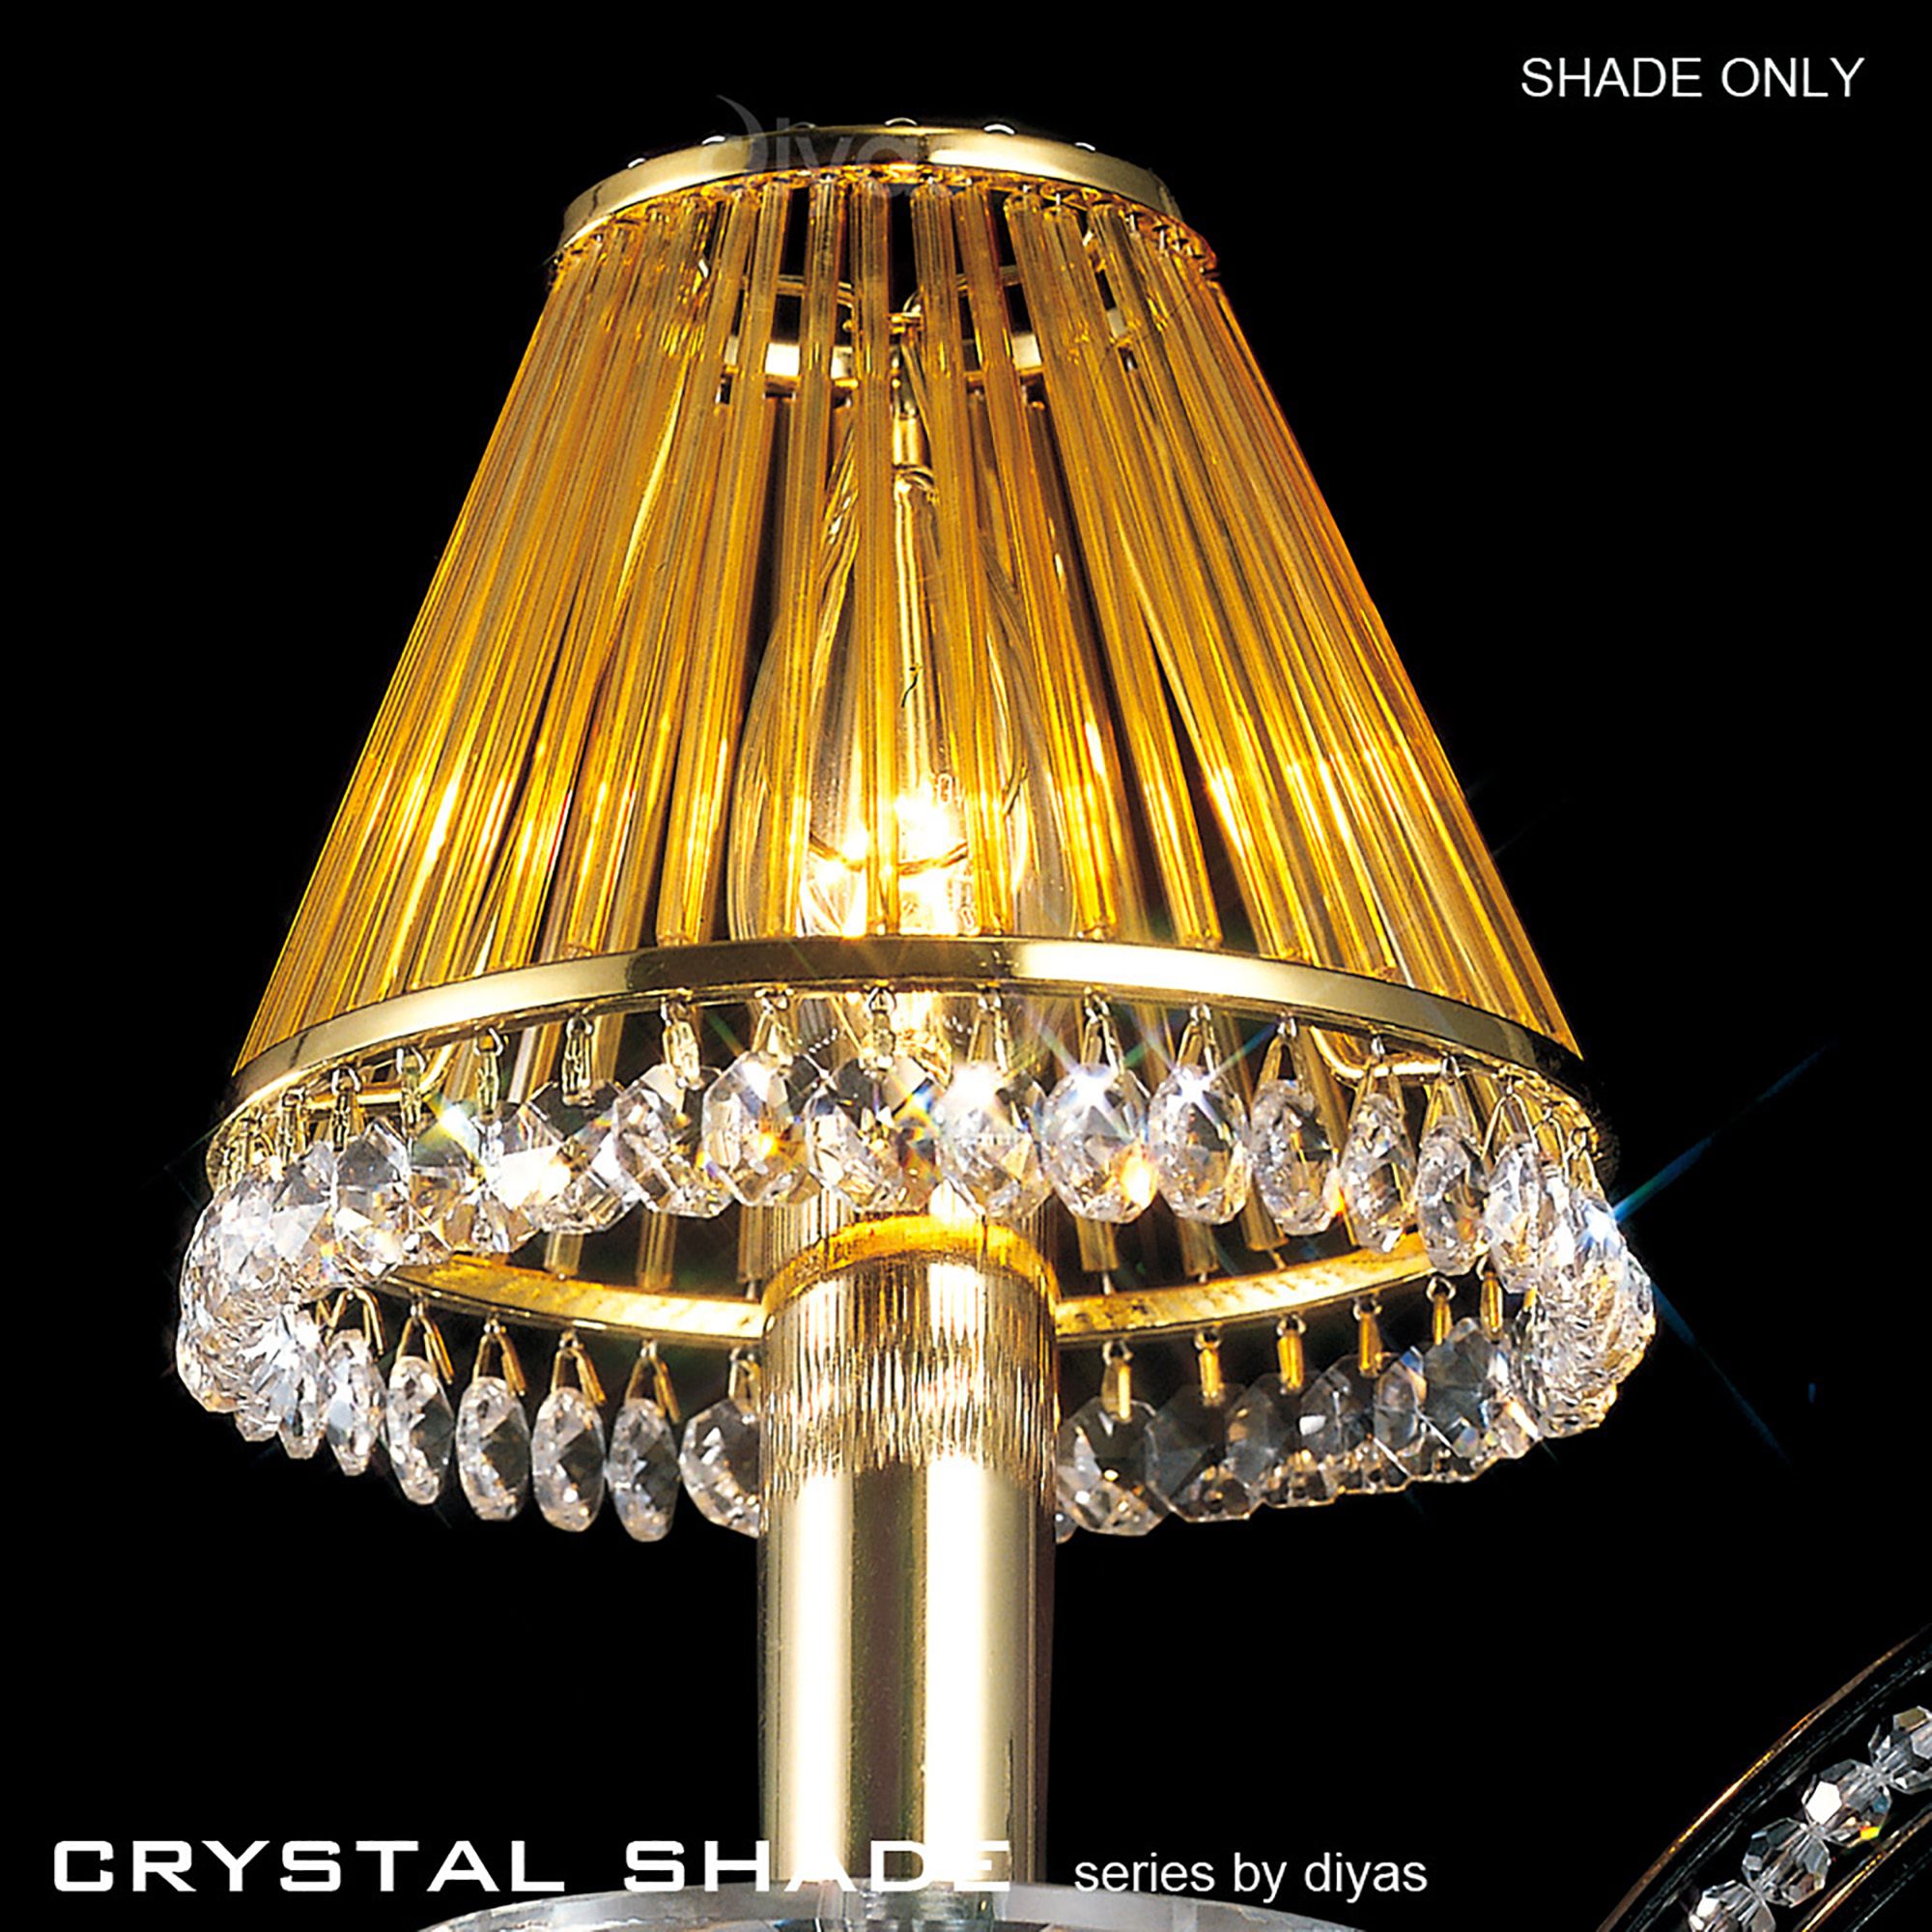 Crystal Shades Glass Crystal Shades Diyas Clip-On Shades